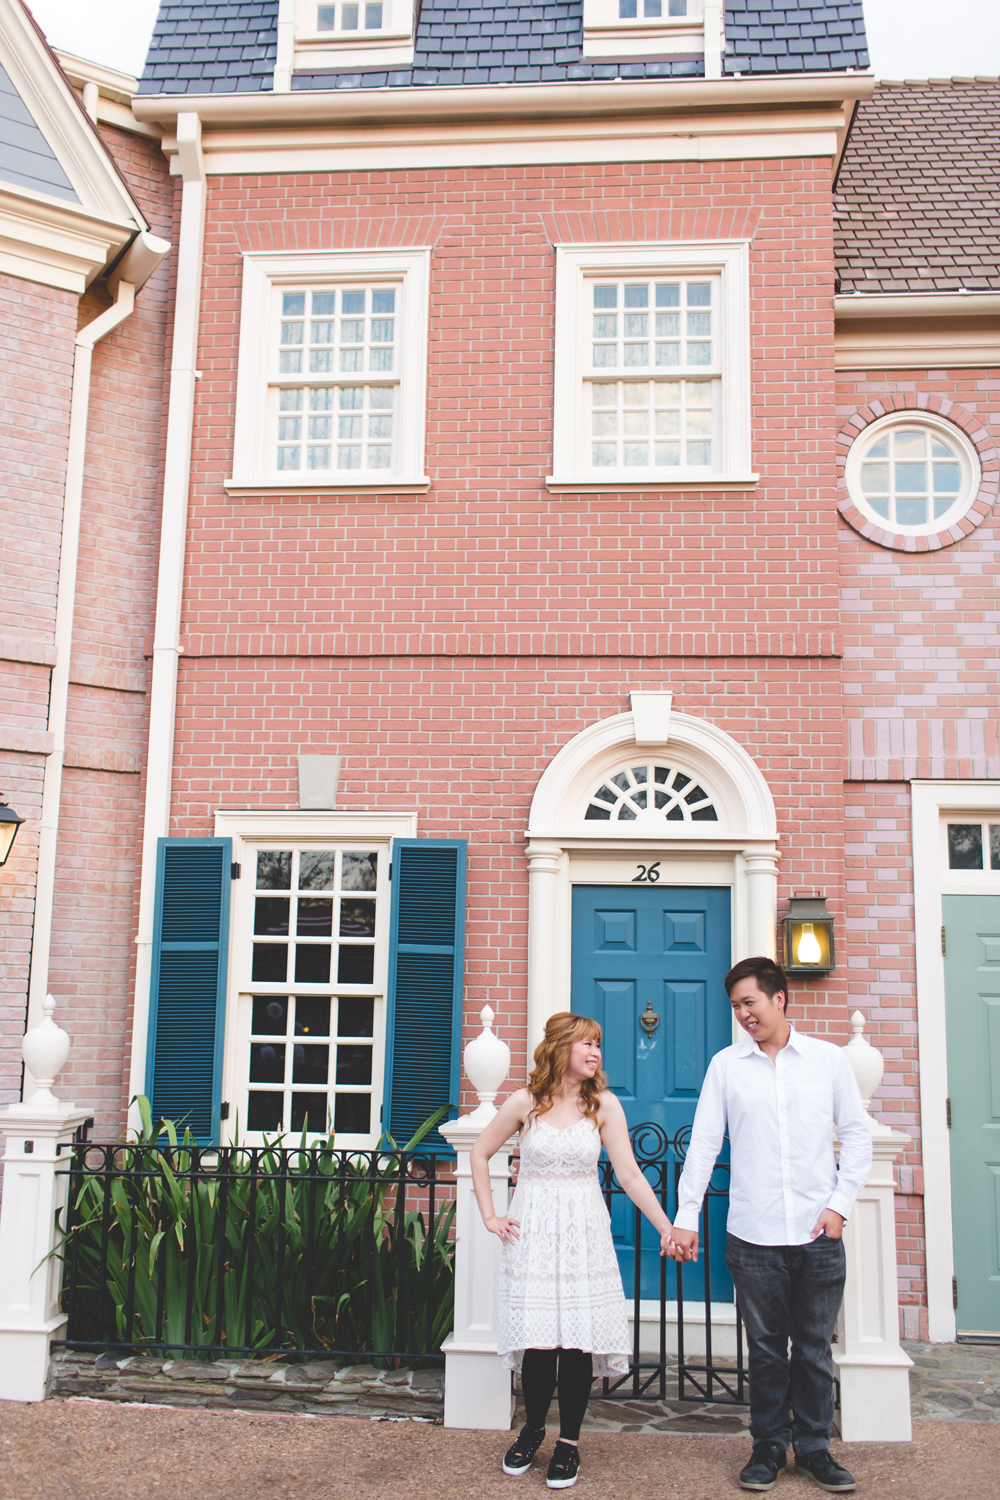 Disney Honeymoon session - Disney Engagement Photos - Disney Wedding Photographer - Destination Orlando Wedding Photographer - Jaime DiOrio (62).jpg